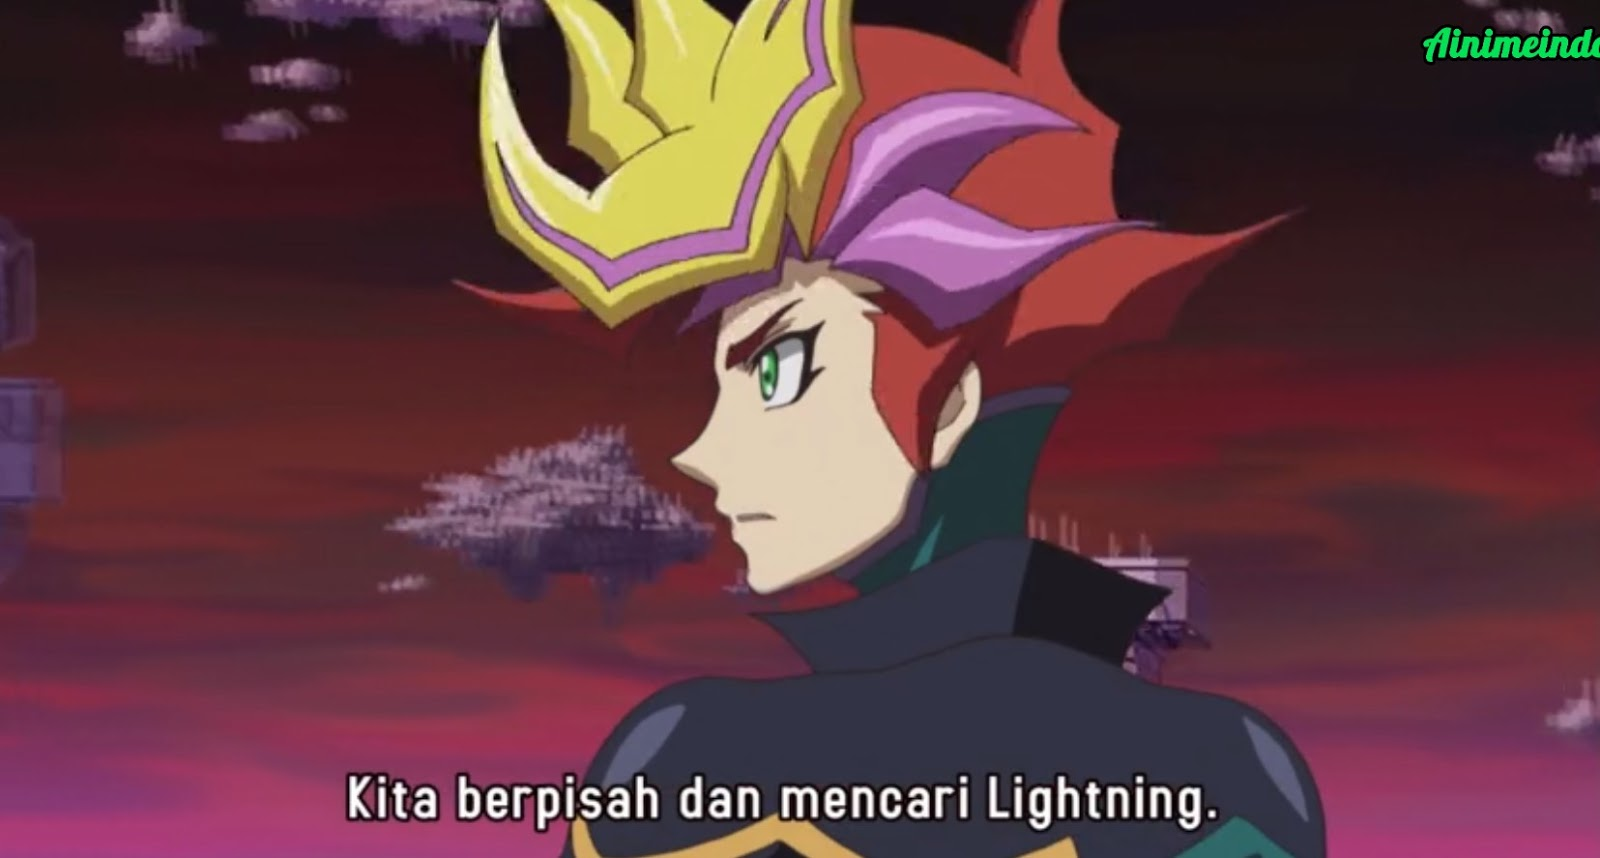 yu-gi-oh! vrains episode 86 subtitle indonesia - black avelic